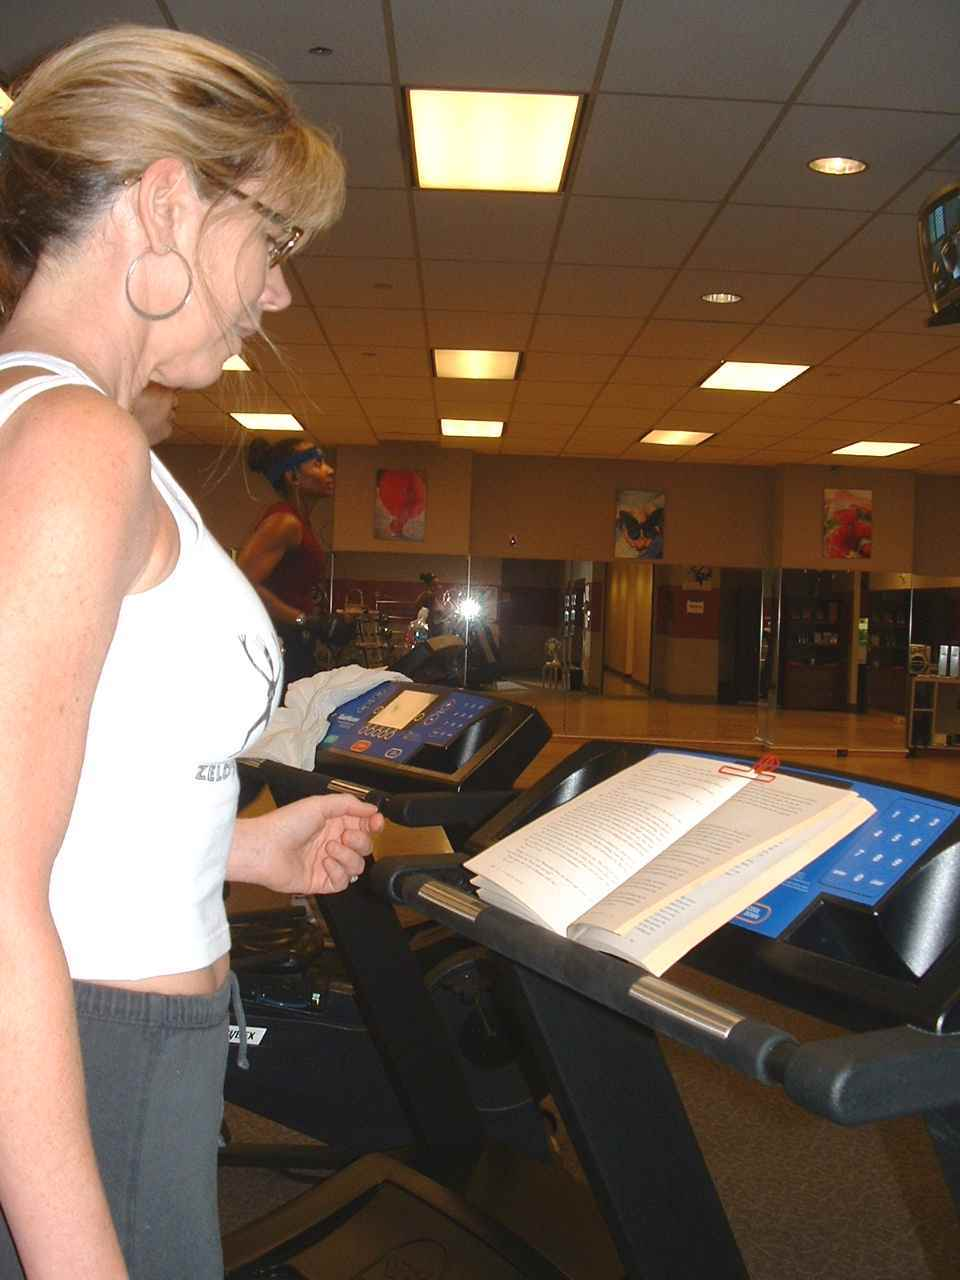 Clipped book on treadmill - Sonya